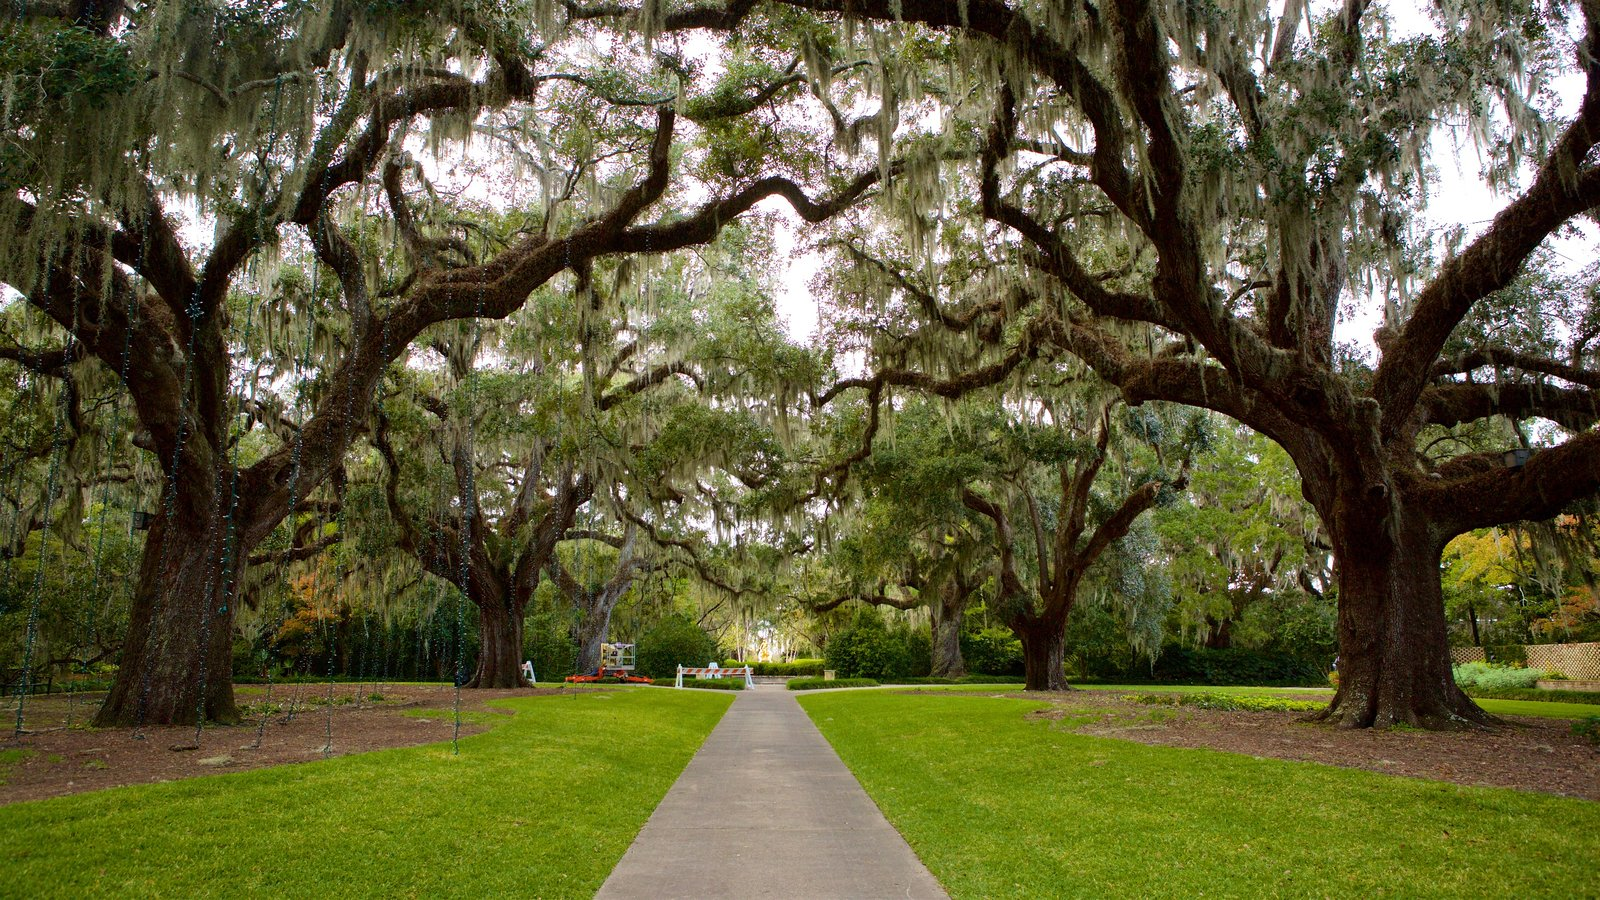 Brookgreen Gardens Pictures: View Photos & Images of Brookgreen Gardens